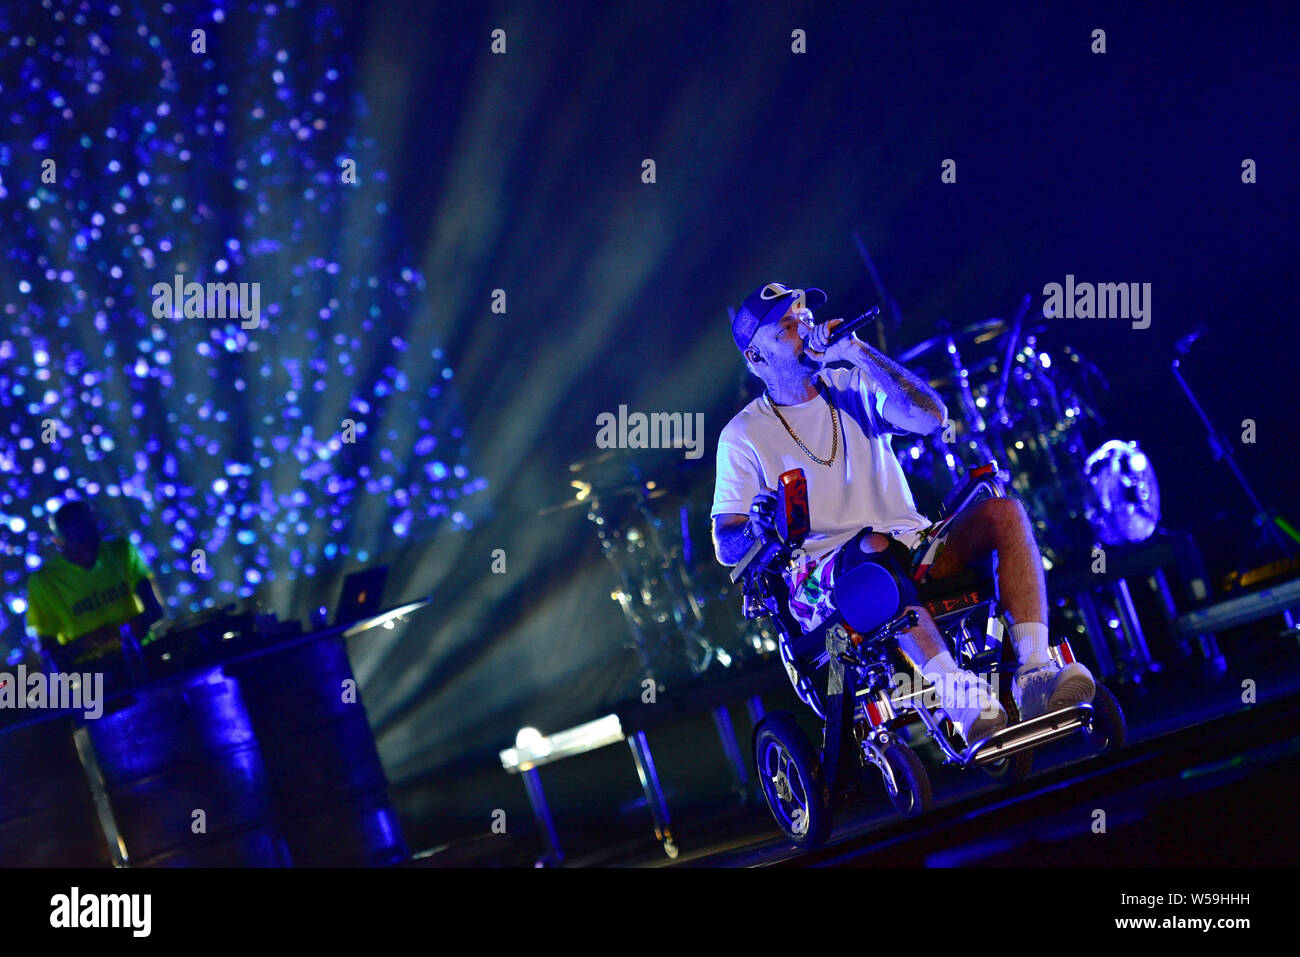 """Napoli, Italy. 26th July, 2019. The Italian rapper Maurizio Pisciottu aka Salmo performing live on stage for his """"Playlist"""" summer tour concert in Napoli at the Arena Flegrea. Credit: Paola Visone/Pacific Press/Alamy Live News Stock Photo"""